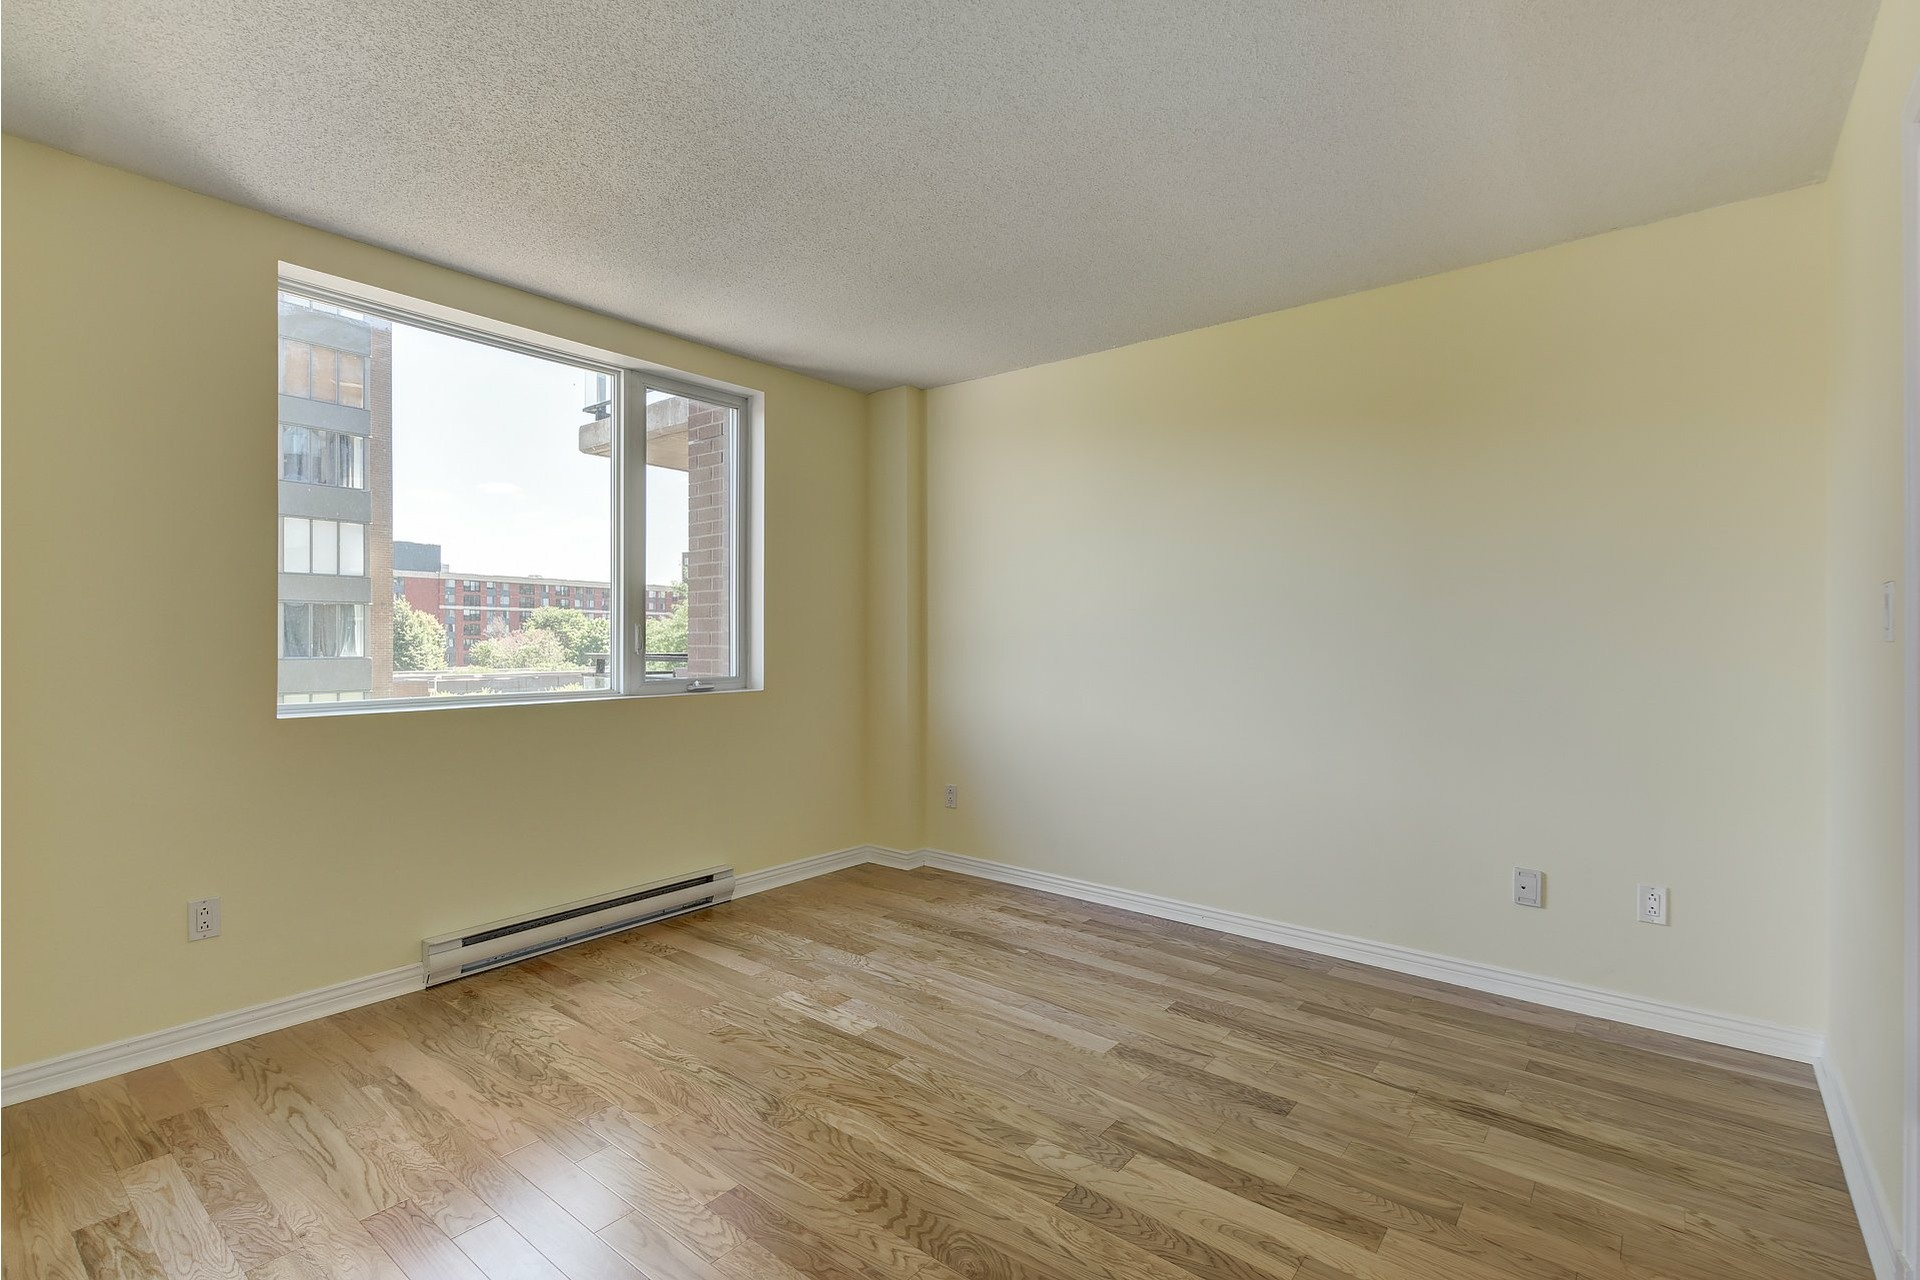 image 9 - Apartment For sale Ville-Marie Montréal  - 4 rooms